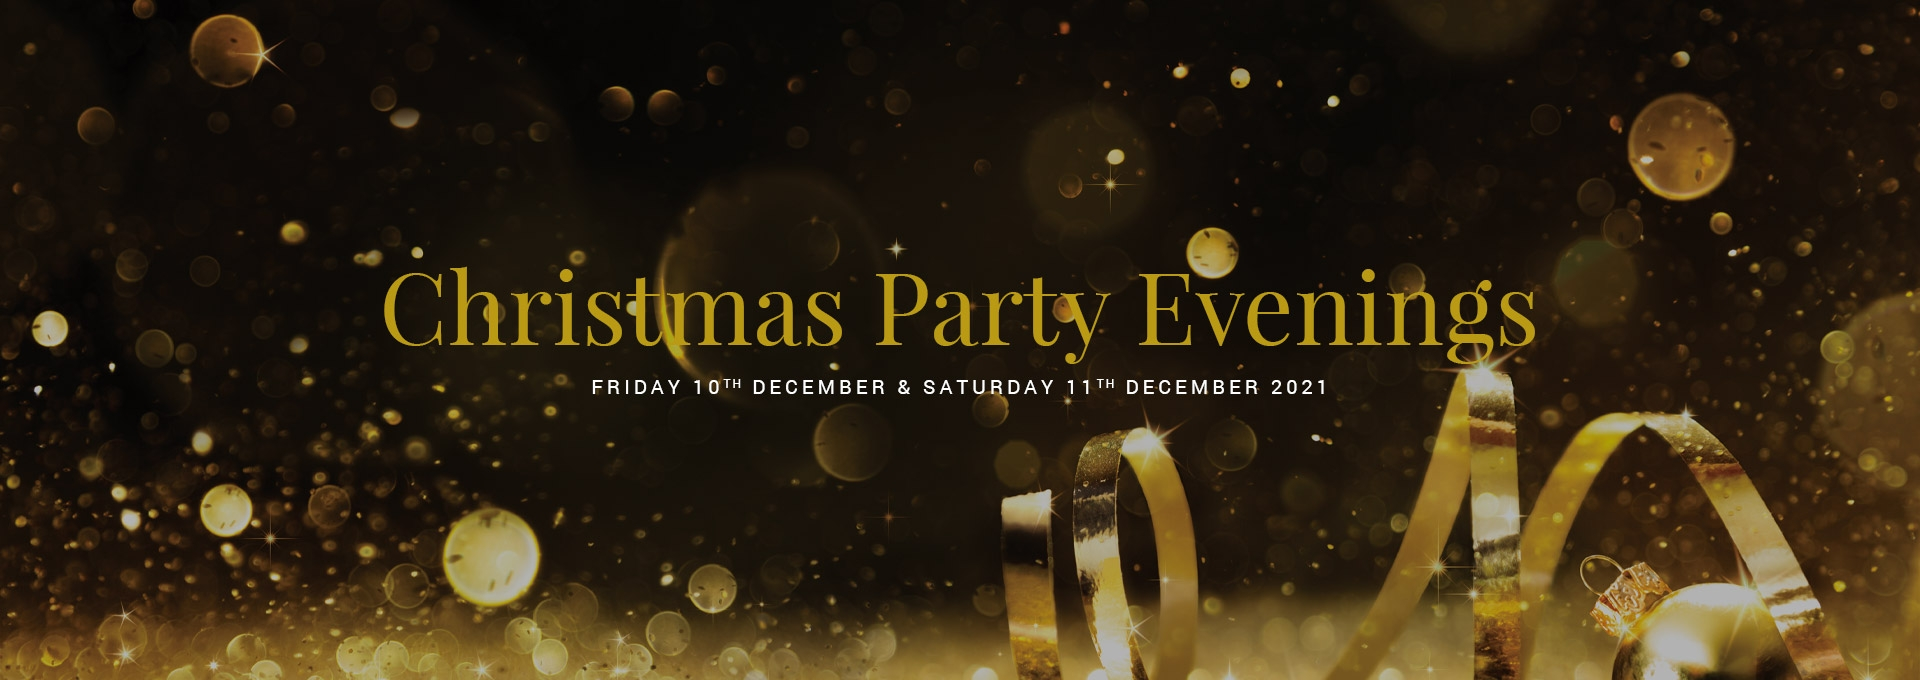 Christmas Party Evenings at the Durrant House Hotel in December 2021